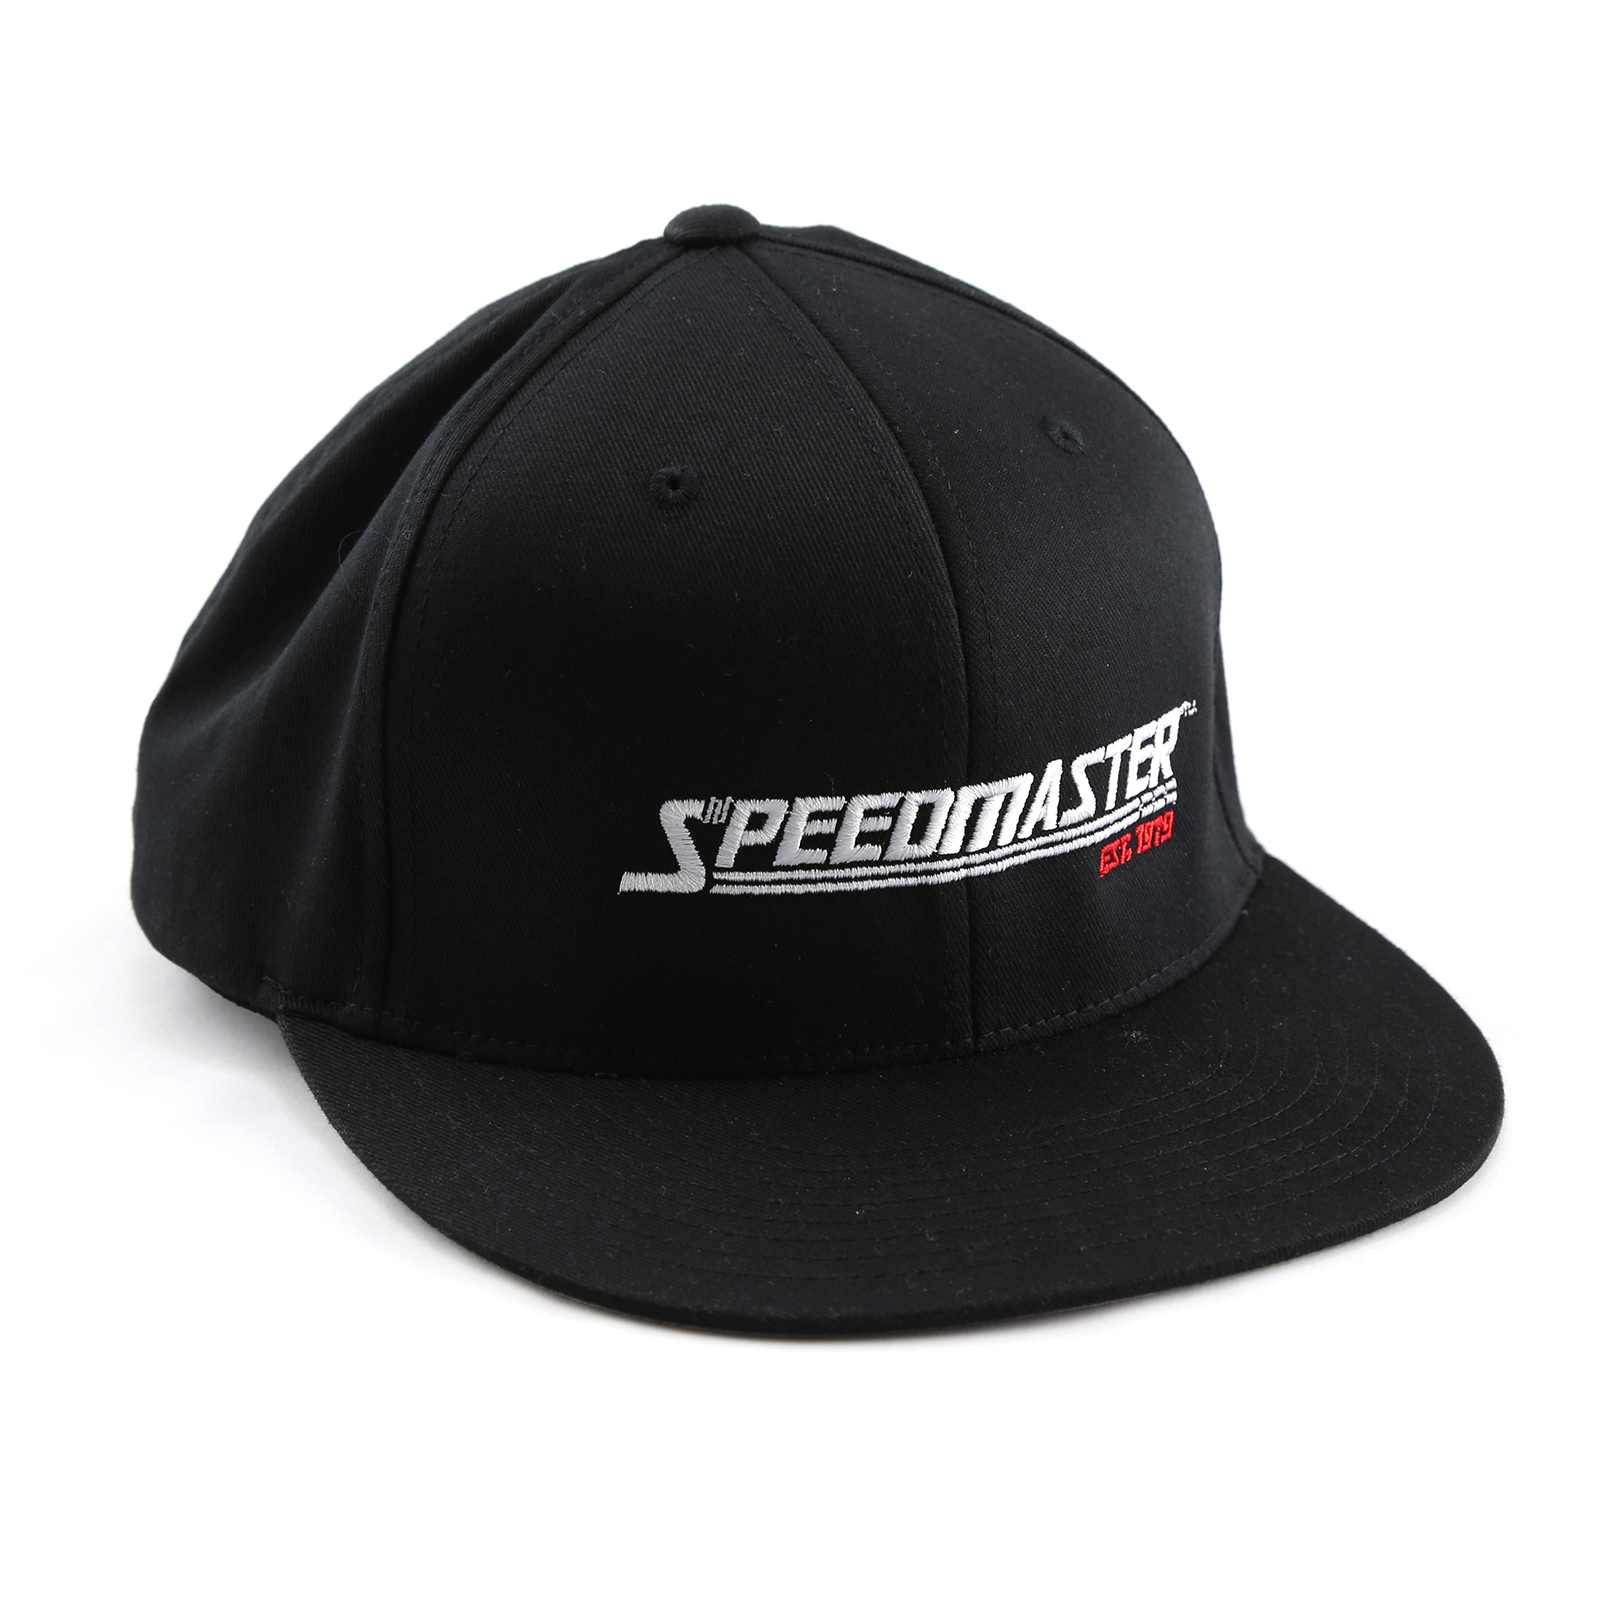 Speedmaster Team Hat Flex Fit Small S - Medium M